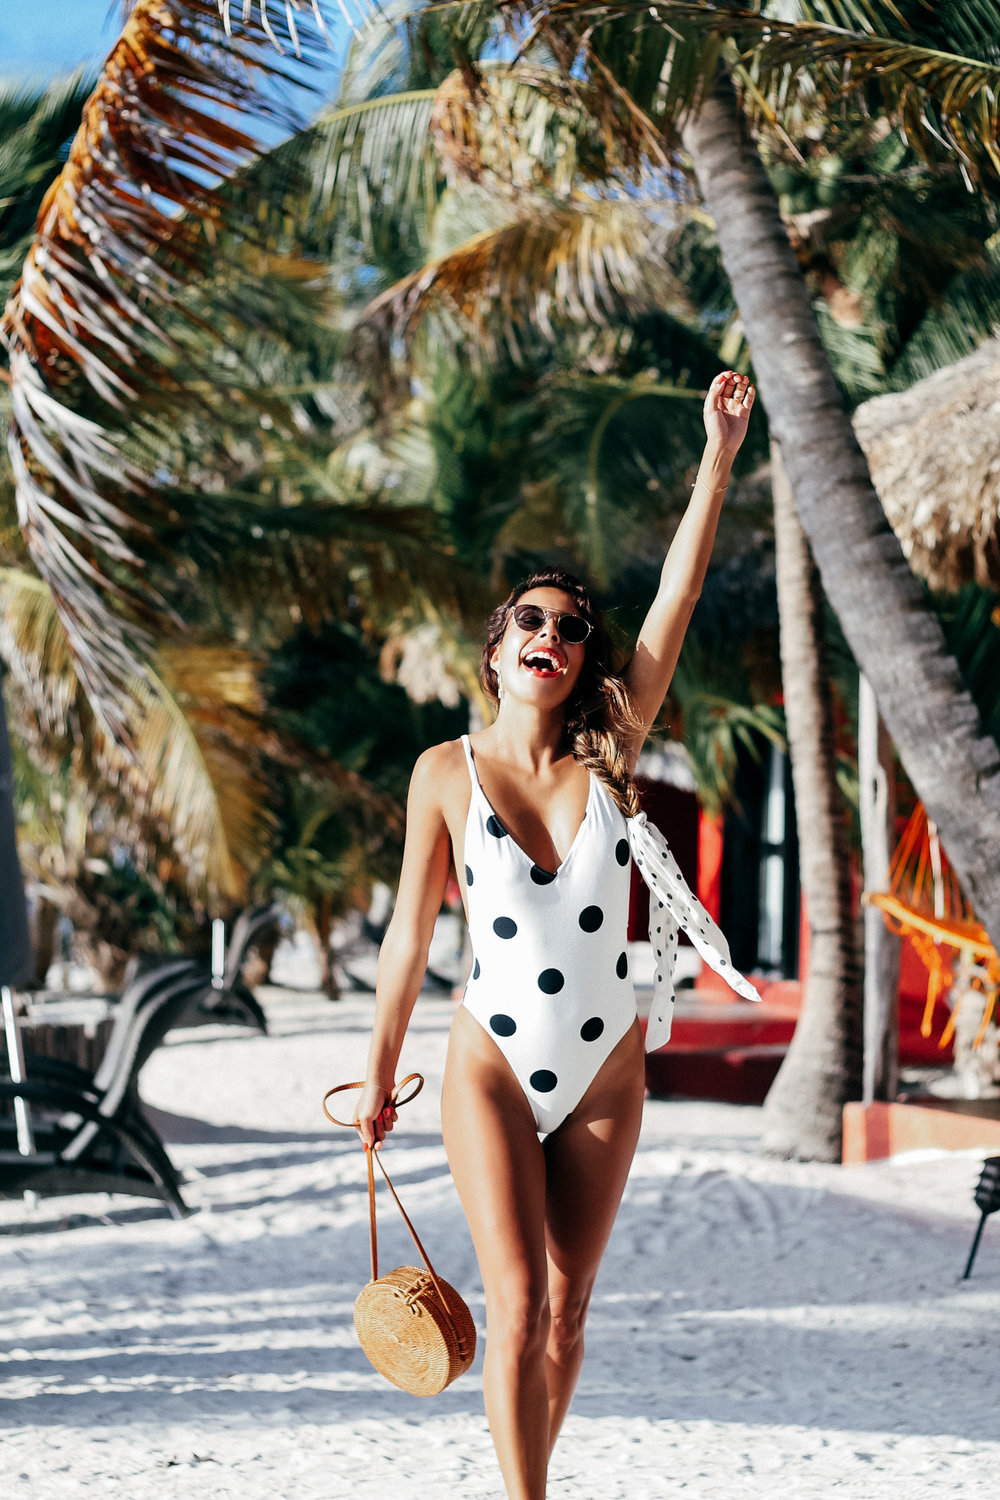 Everyday Pursuit in Belize at Matachica Resort wearing Zara Polka Dot Swimsuit